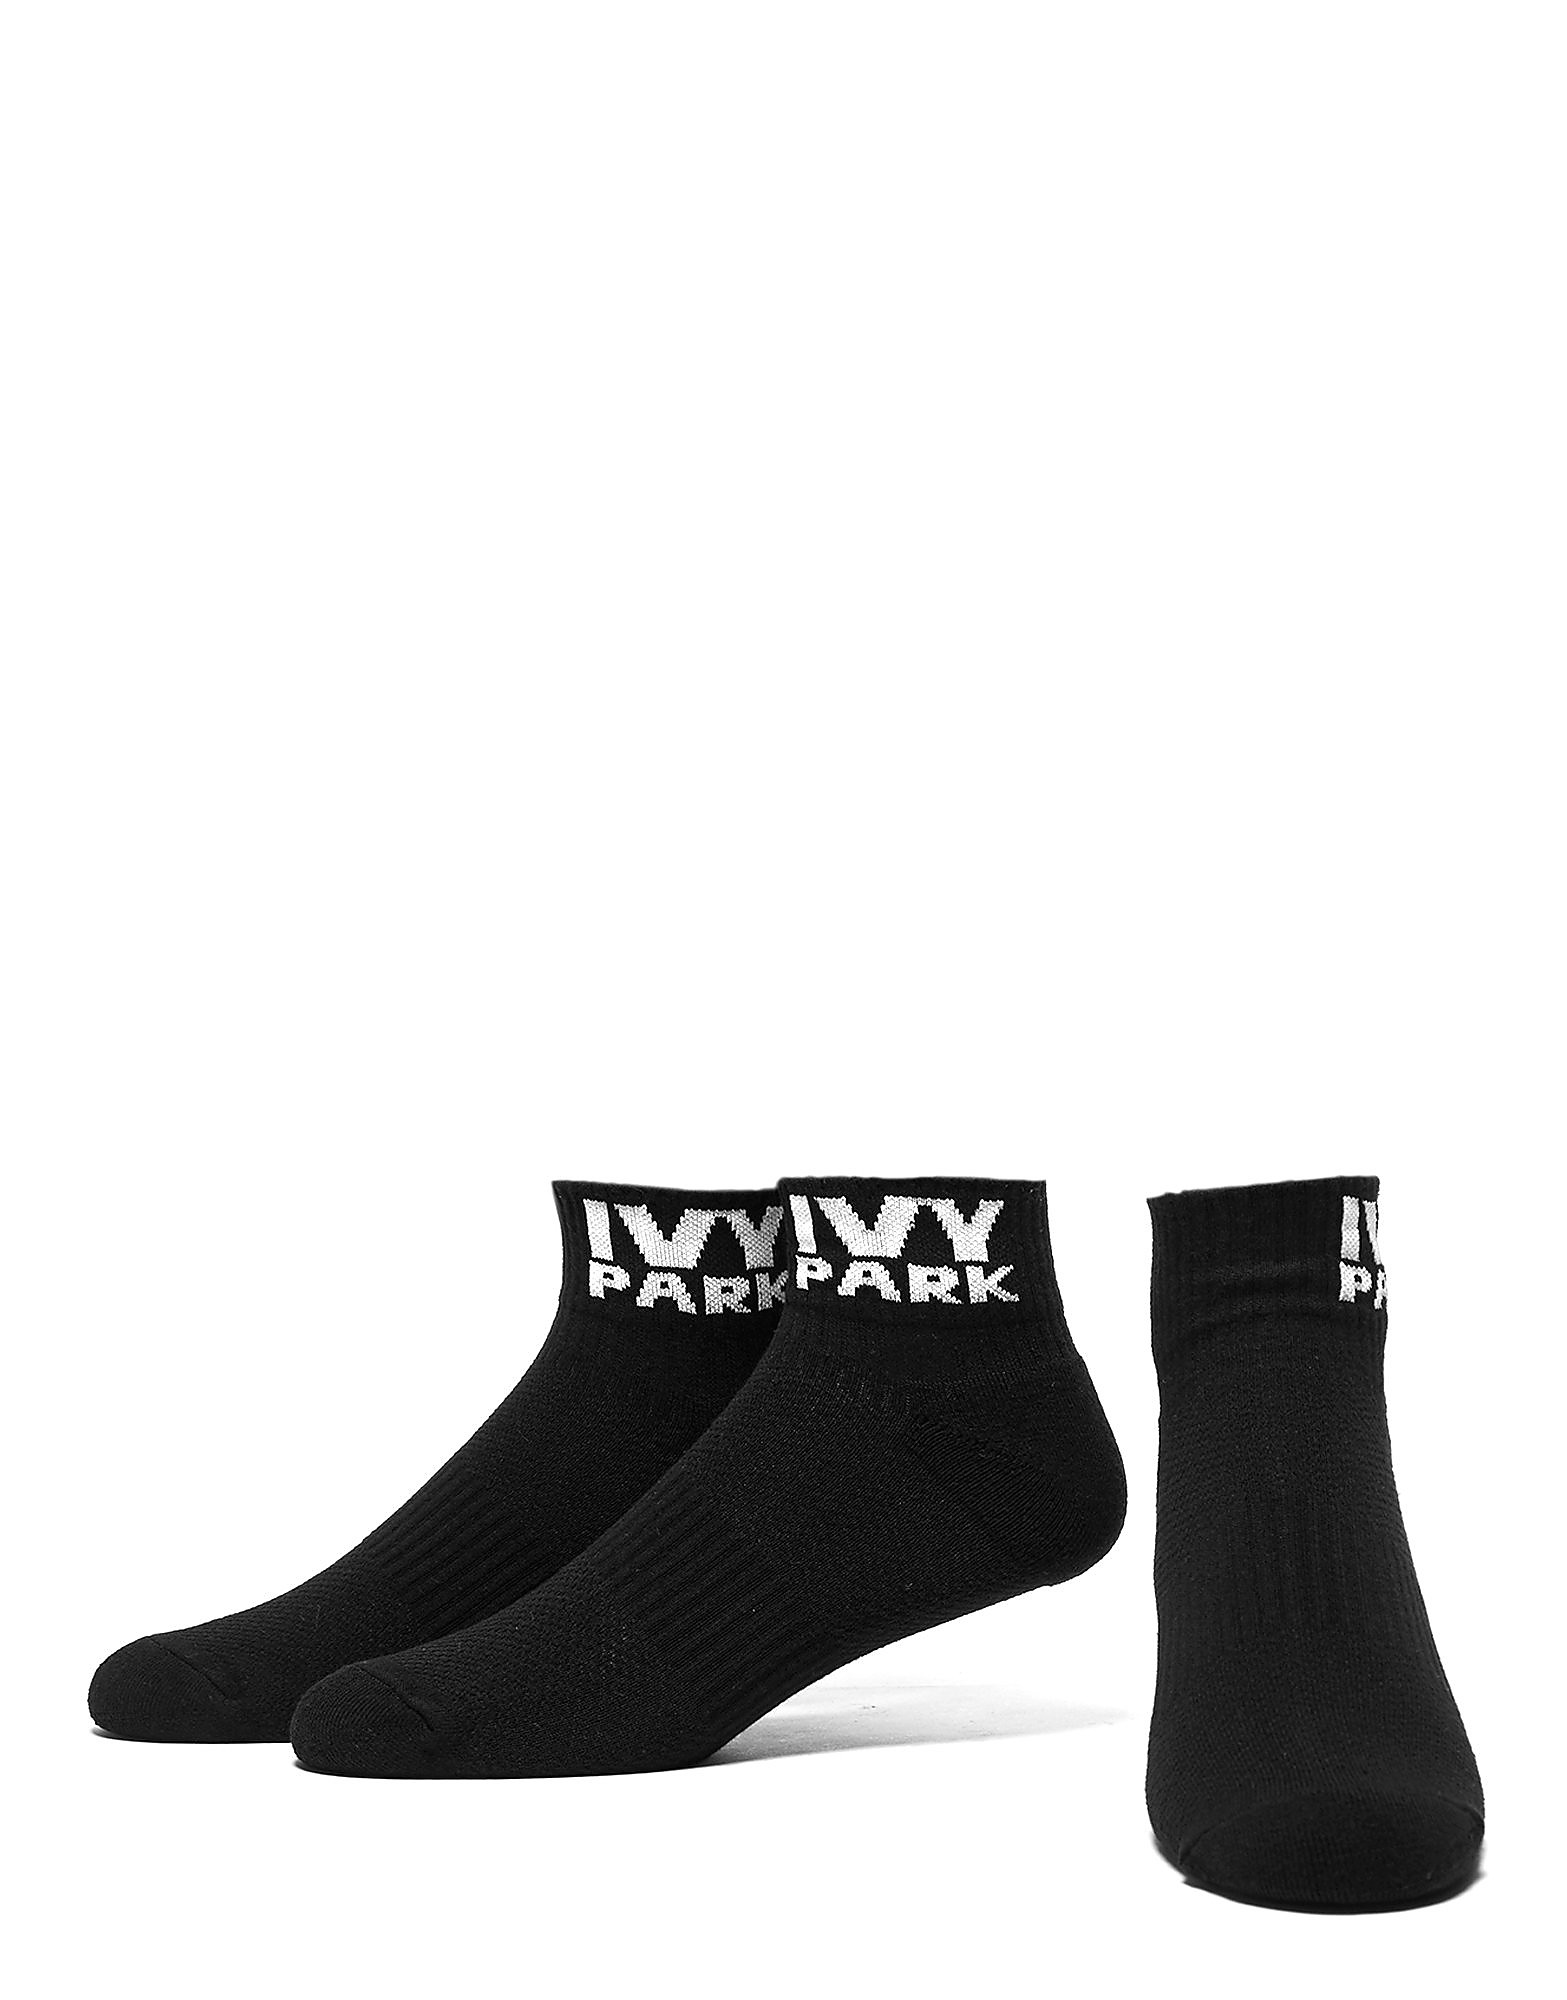 IVY PARK 3 Pack Ankle Socks